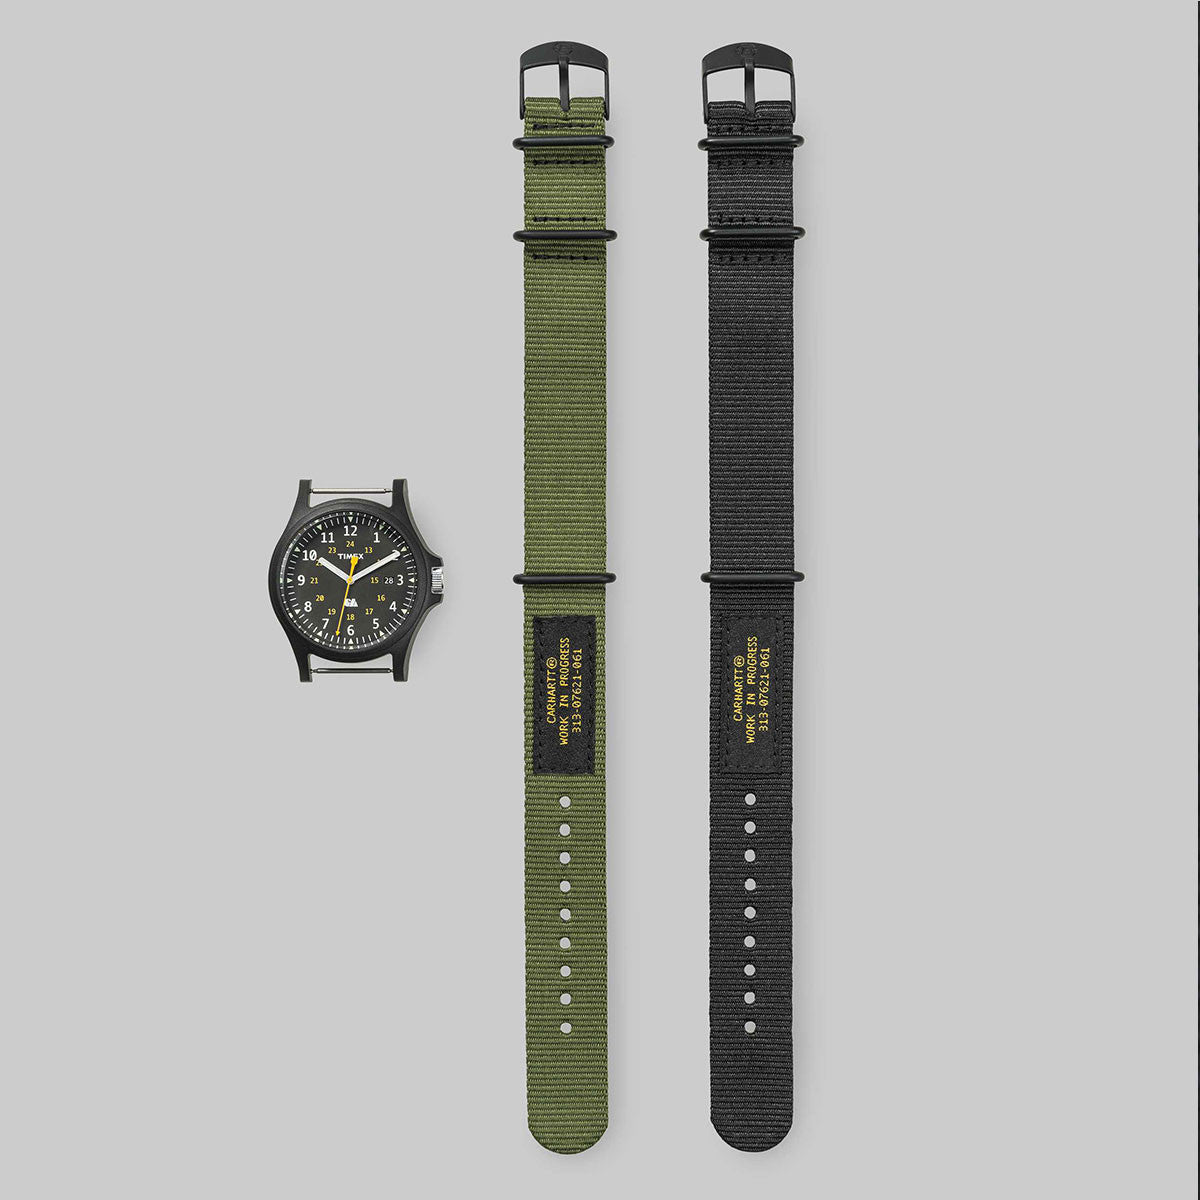 Carhartt WIP Timex Watch